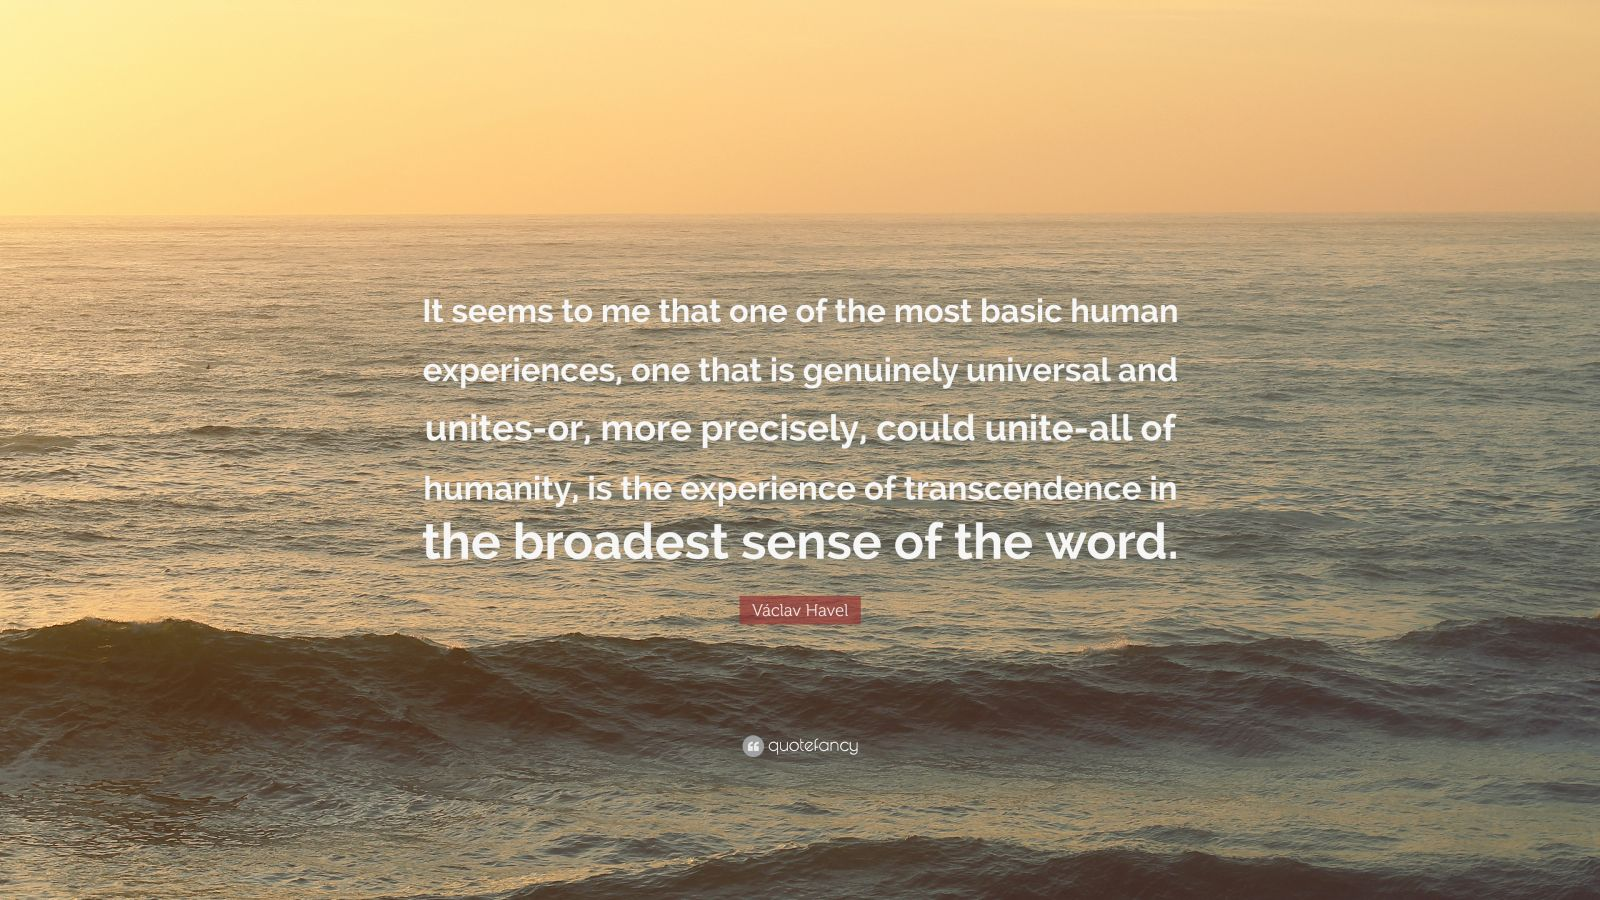 """Václav Havel Quote: """"It seems to me that one of the most basic human experiences, one that is genuinely universal and unites-or, more precisely, could unite-all of humanity, is the experience of transcendence in the broadest sense of the word."""""""